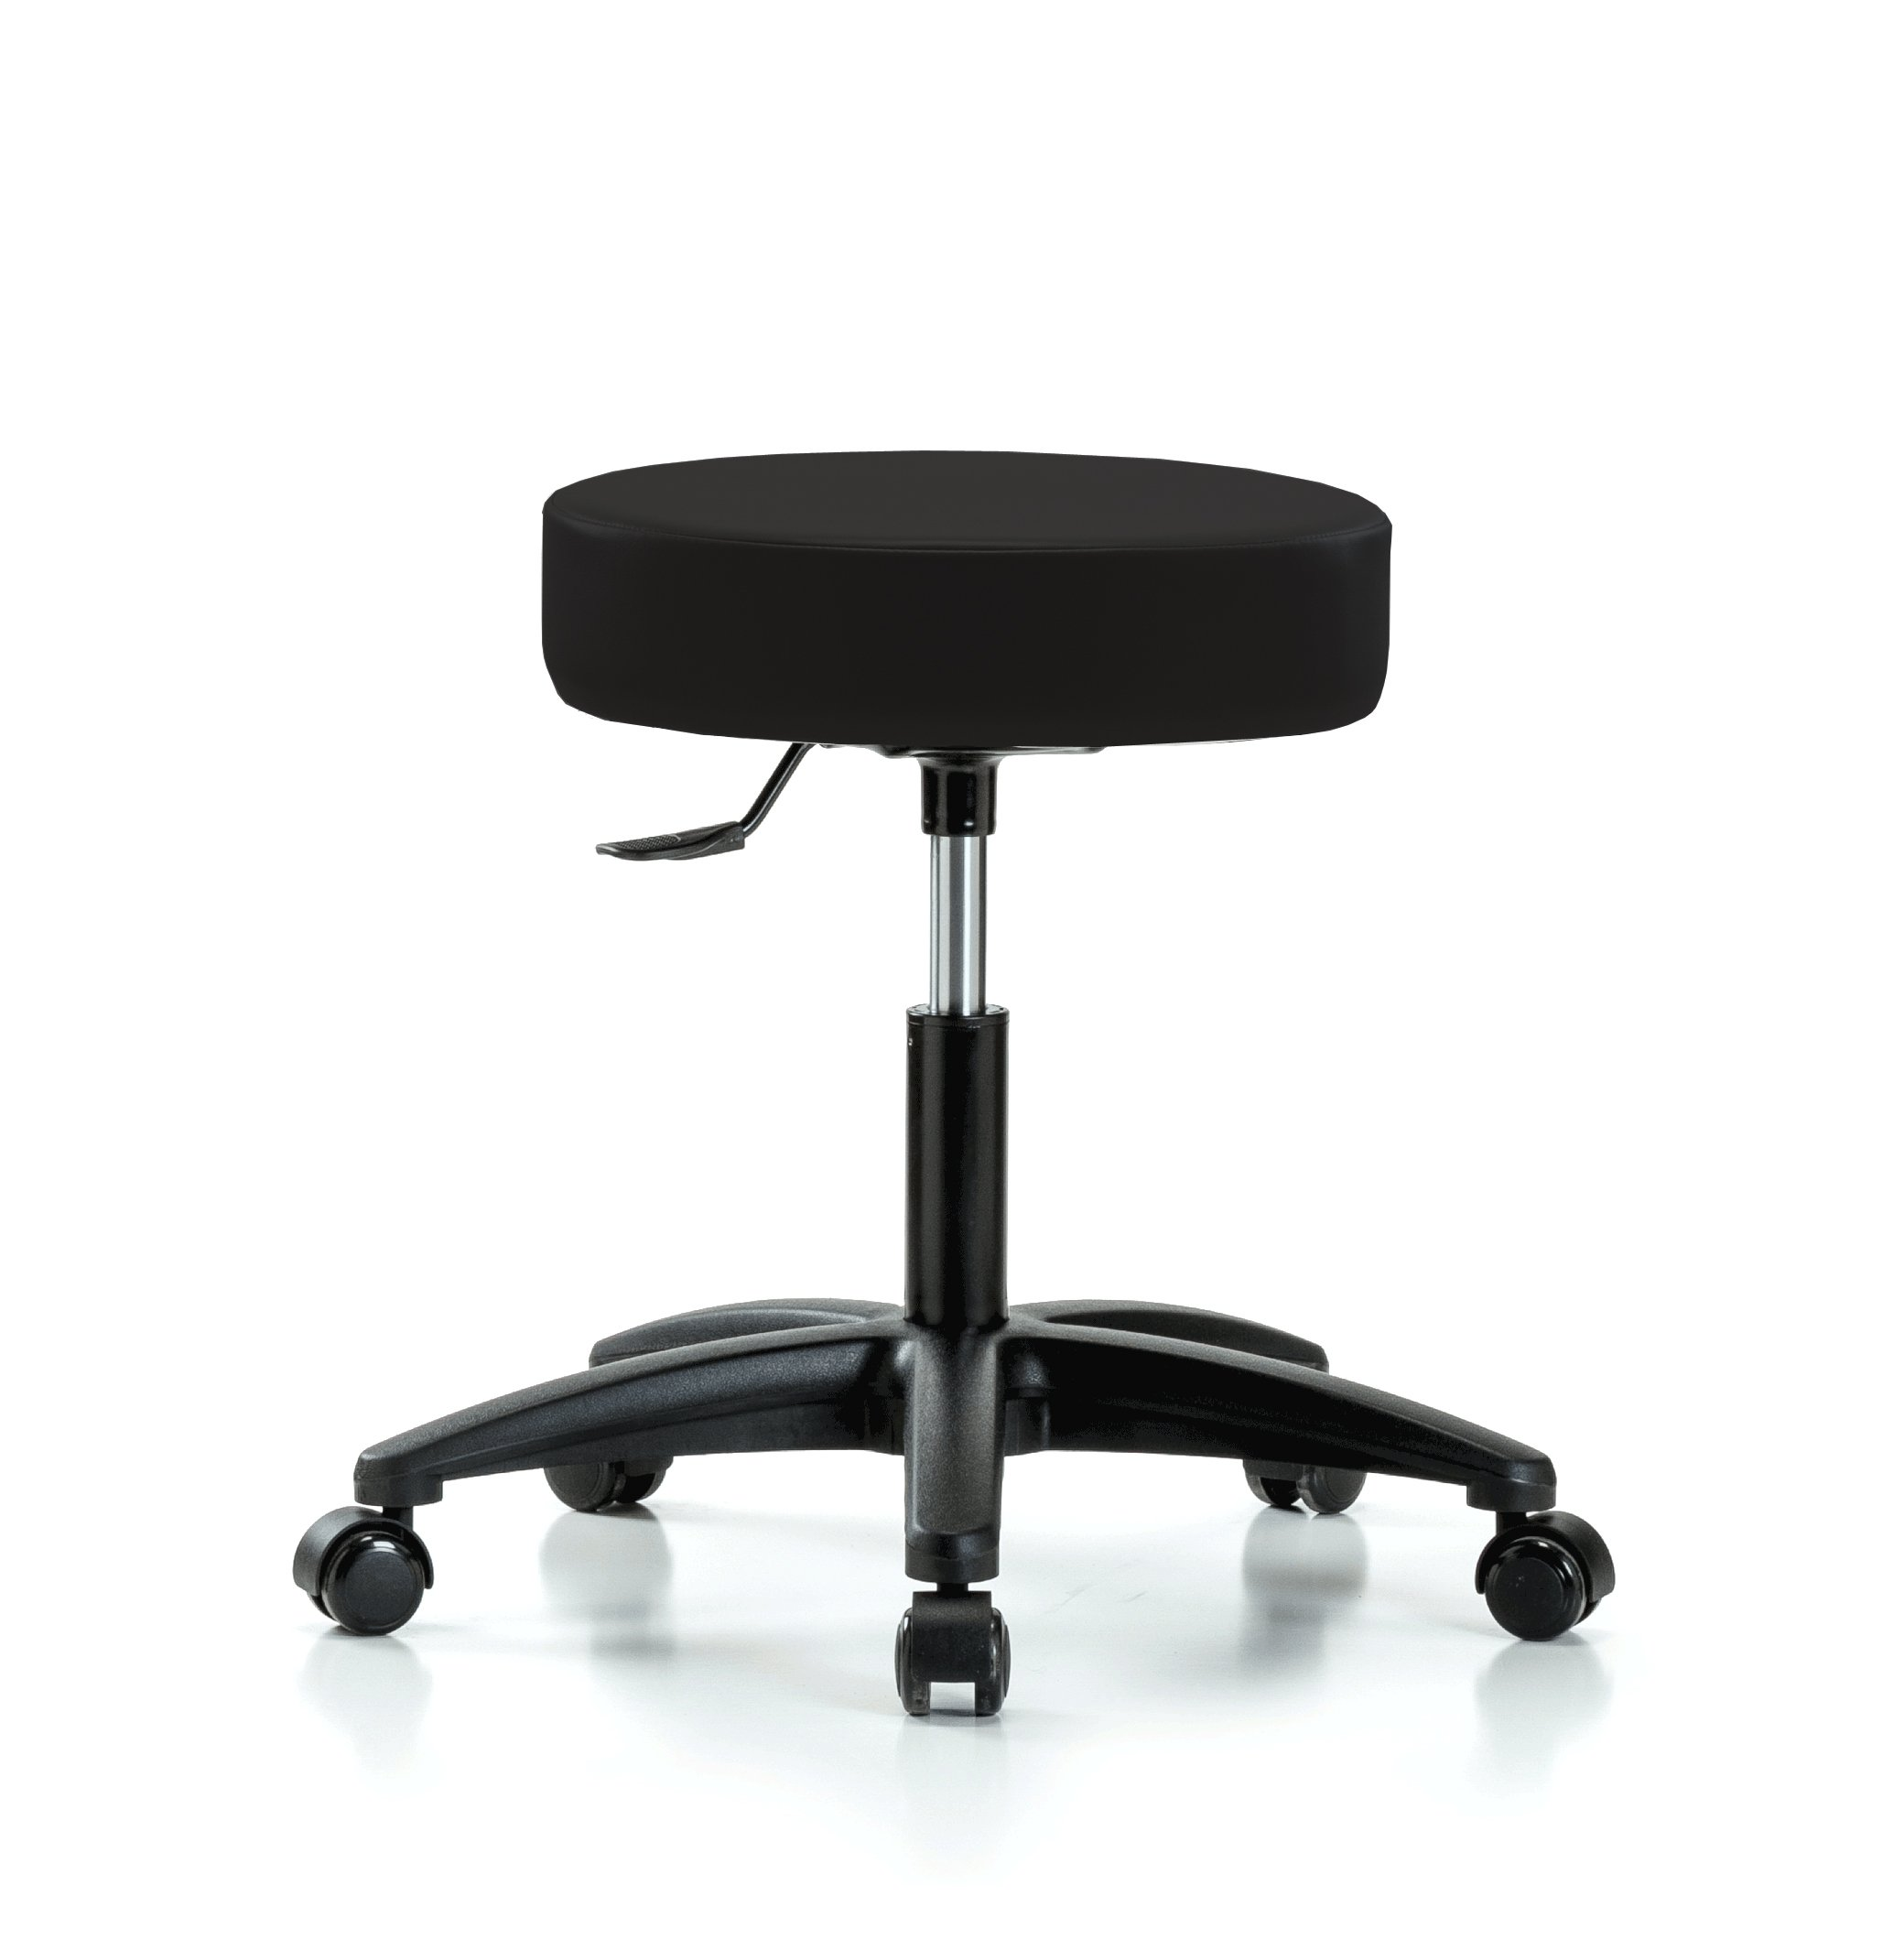 Perch Rolling Single Lever Height Adjustable Swivel Stool for Salon, Spa, Massage, Office, Home or Workshop 18'' - 23'' (Soft Floor Casters/Black Vinyl)